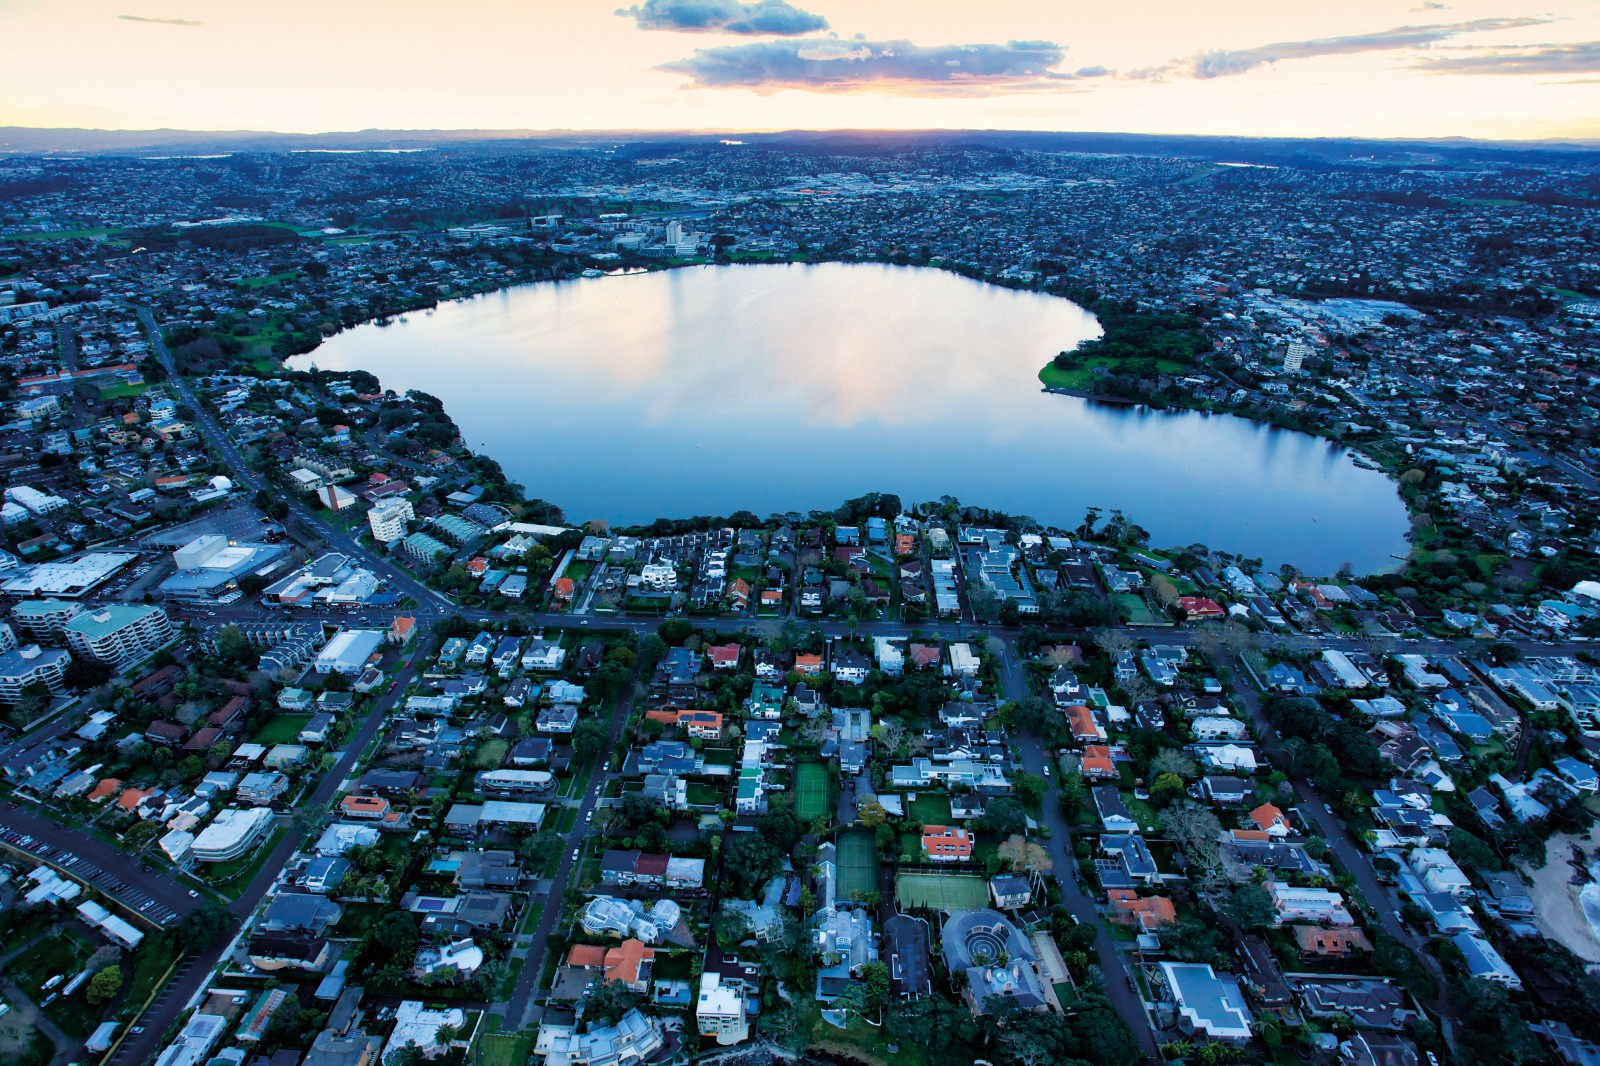 Lake Pupuke's placid waters hide 200,000-year-old craters. Pupuke's two adjacent phreatomagmatic eruptions blew out a square kilometre of country rock, and its lava flooded what's now the Takapuna foreshore. It remained the largest eruption in the field for 200,000 years, until One Tree Hill ejected five times as much material.